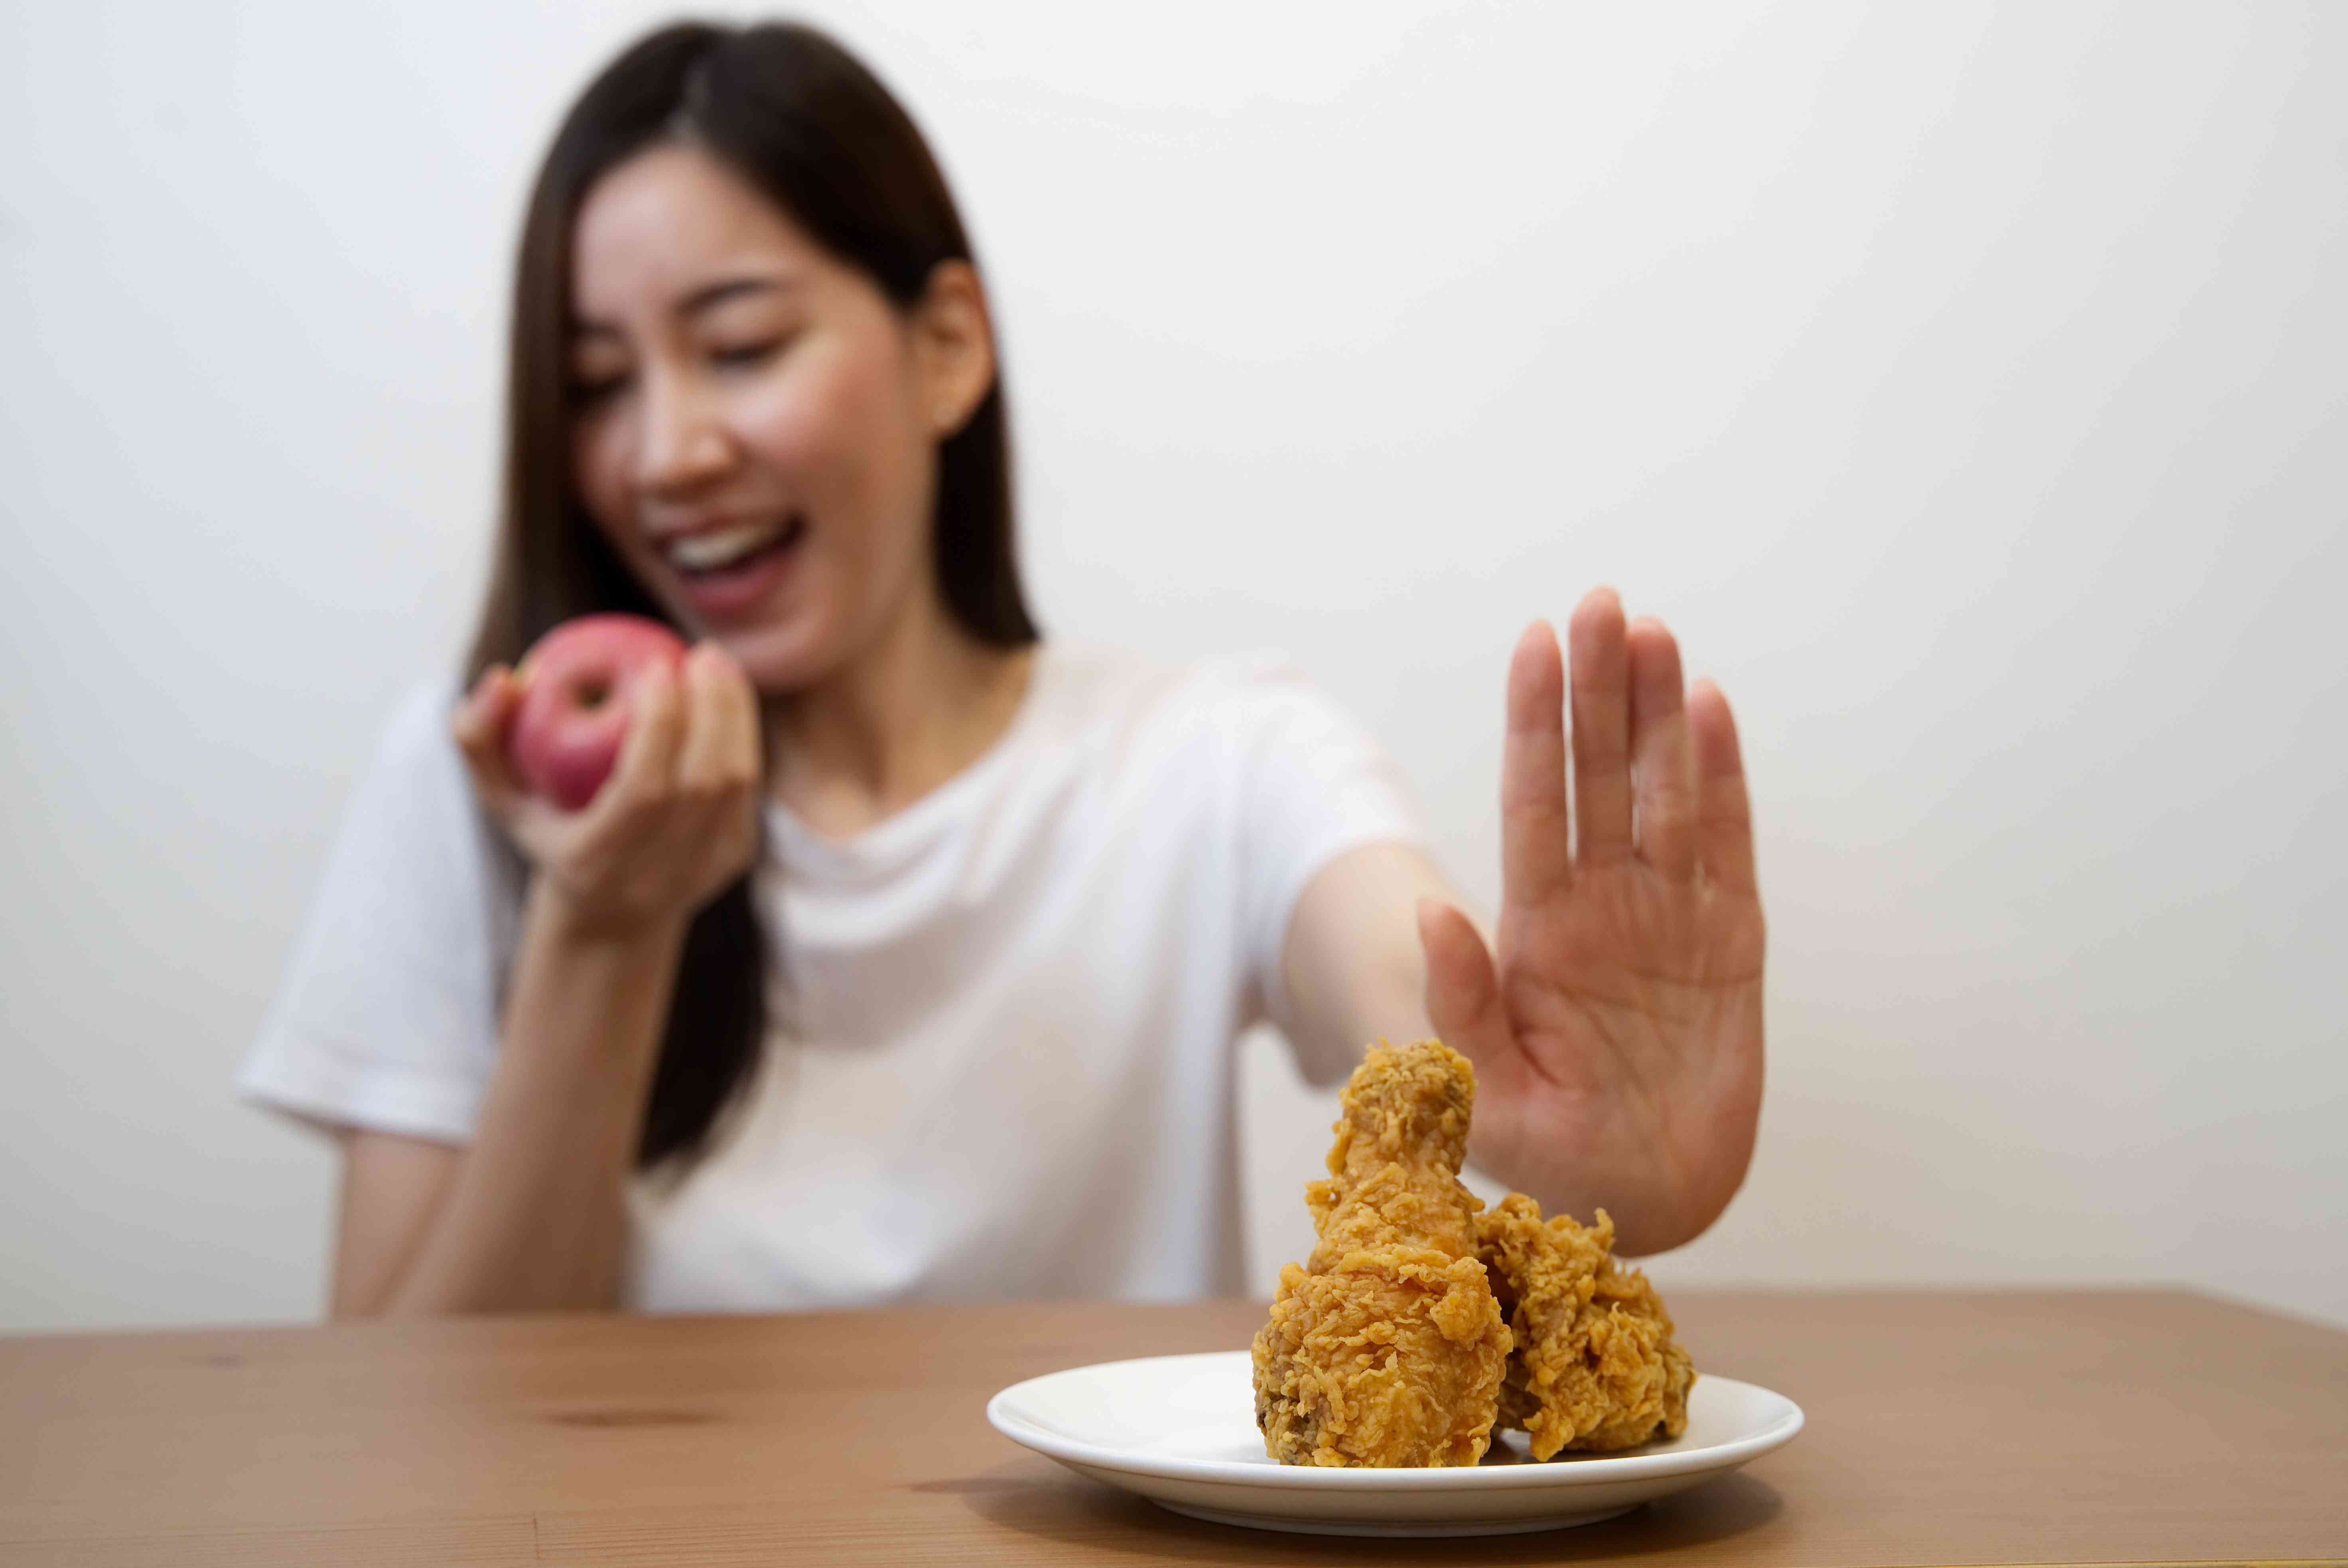 Young girl on dieting for good health concept. Close up female using hand reject junk food by pushing out her favorite fried chicken and choose red apple and salad for good health.